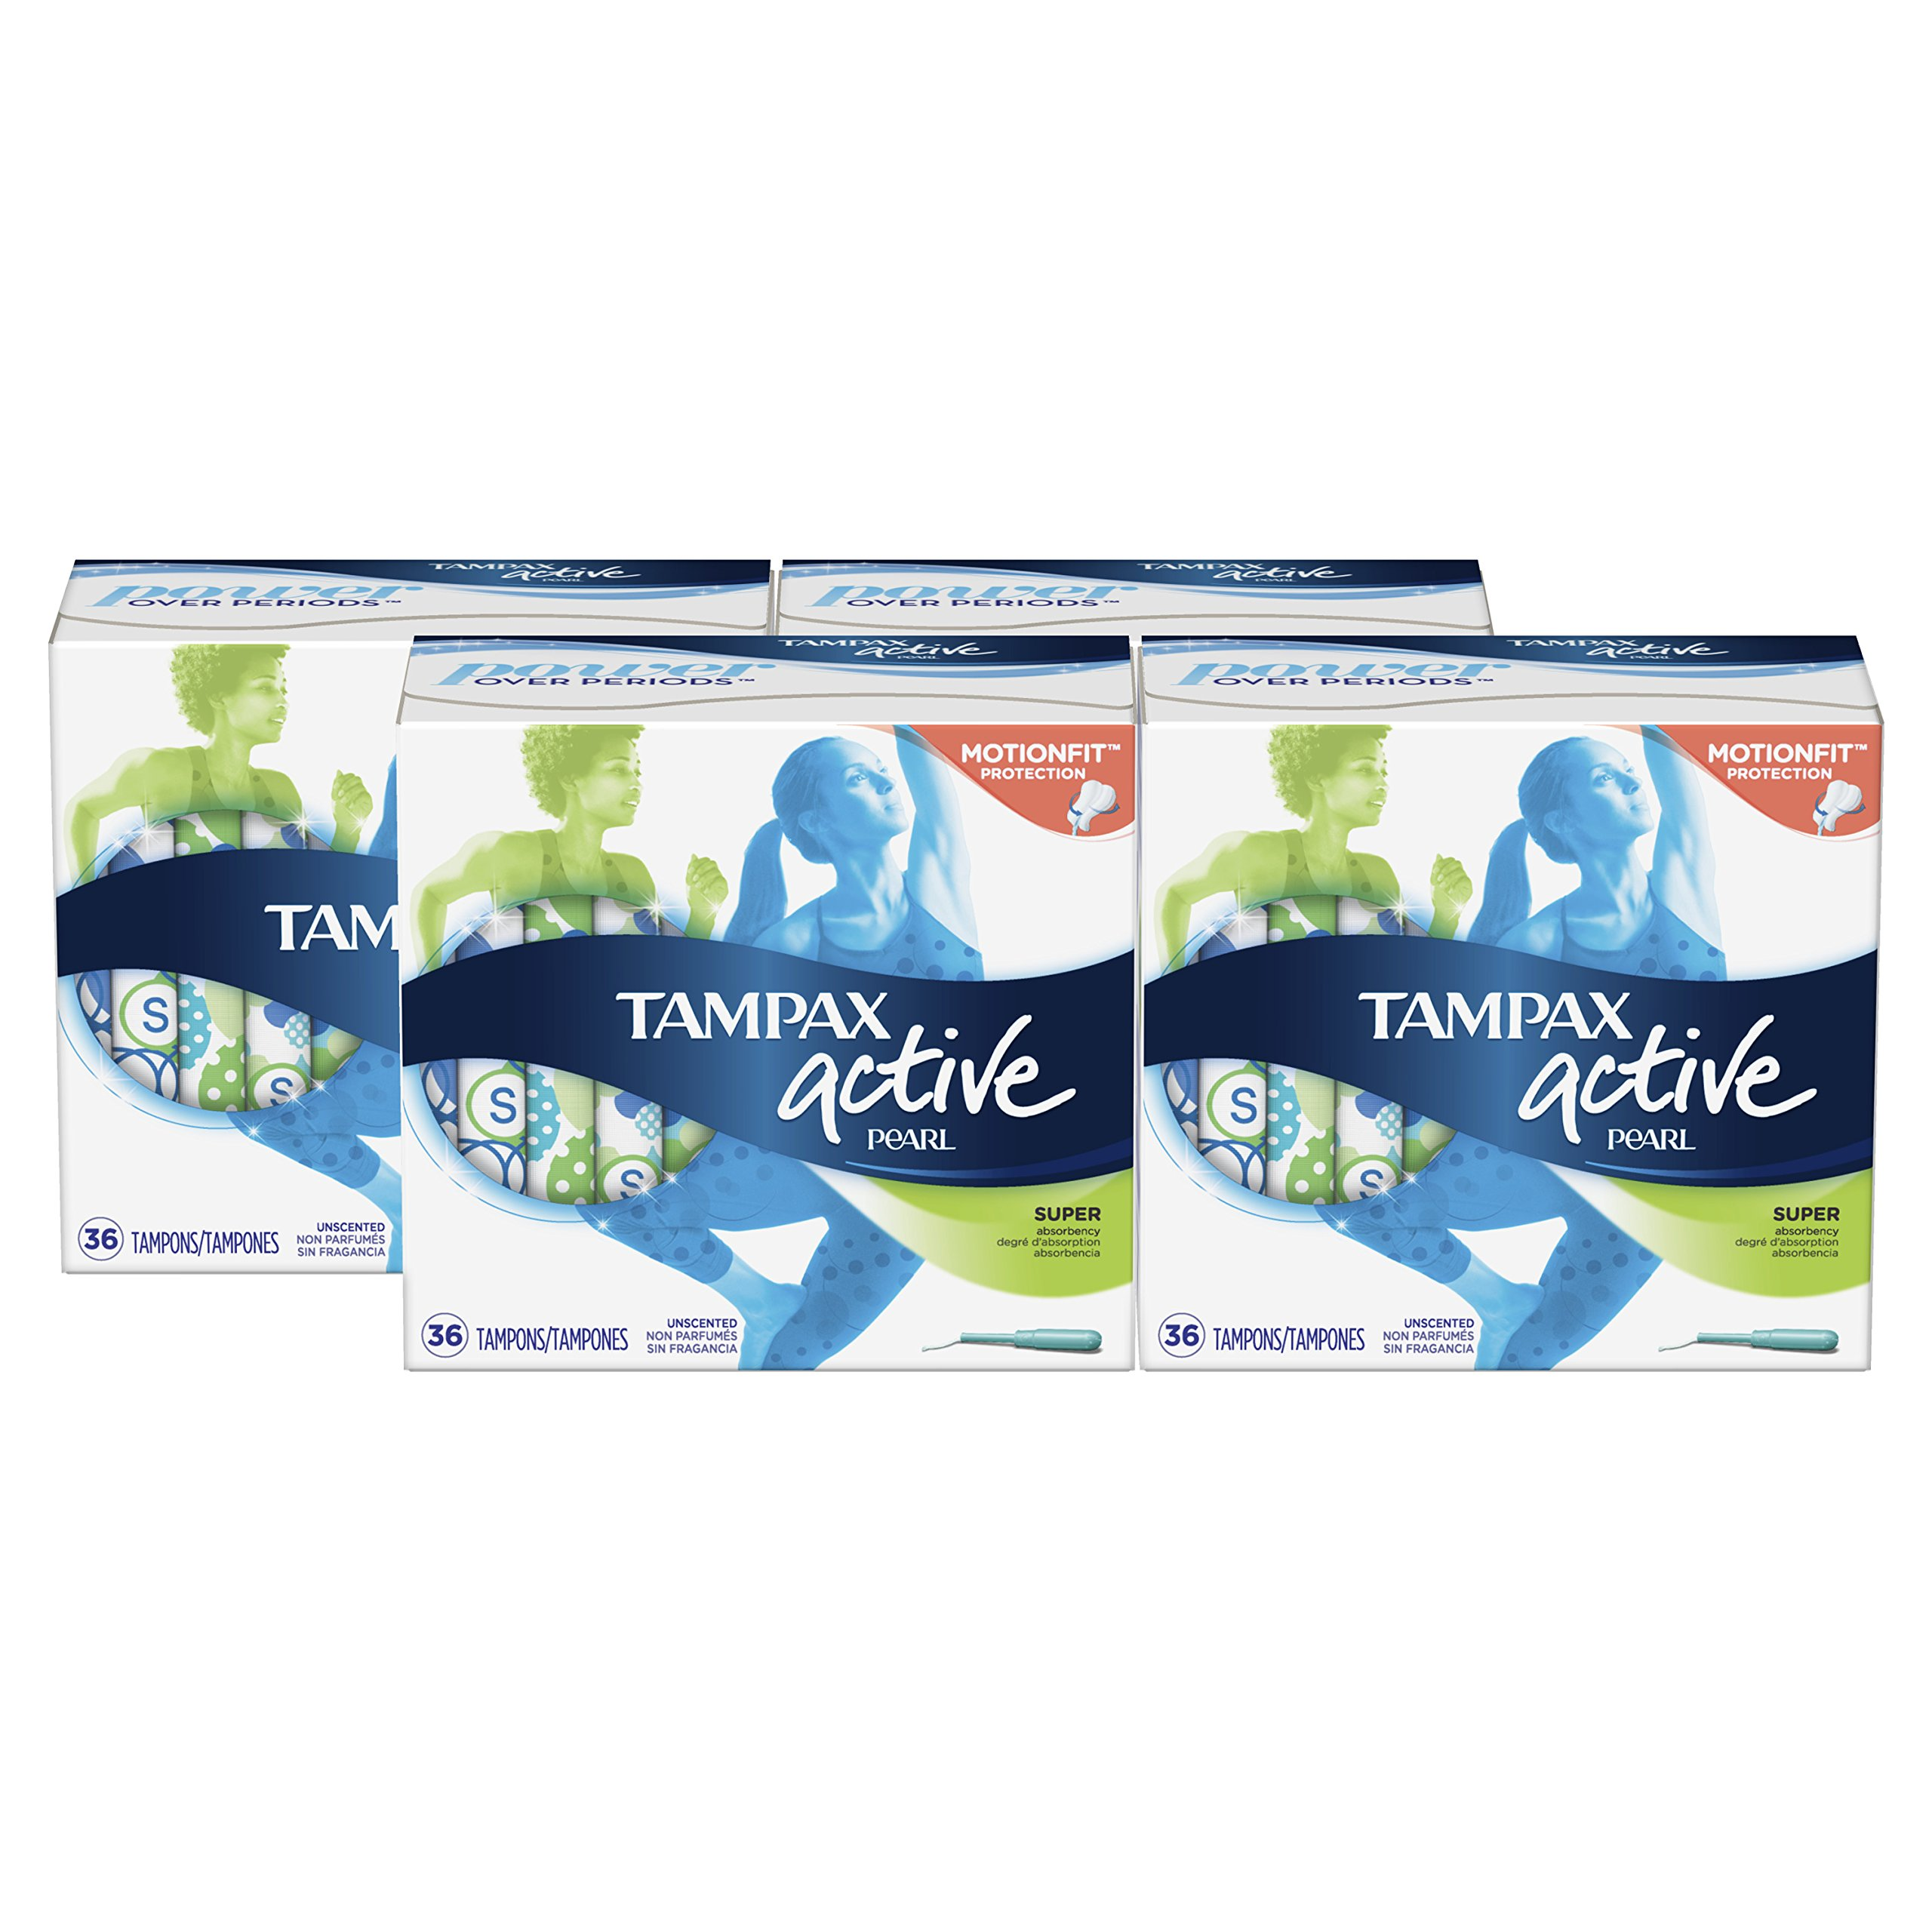 Tampax Pearl Active Tampons with Plastic Applicator, Super Absorbency, Unscented, 36 Count- Pack of 4 (144 Count Total)